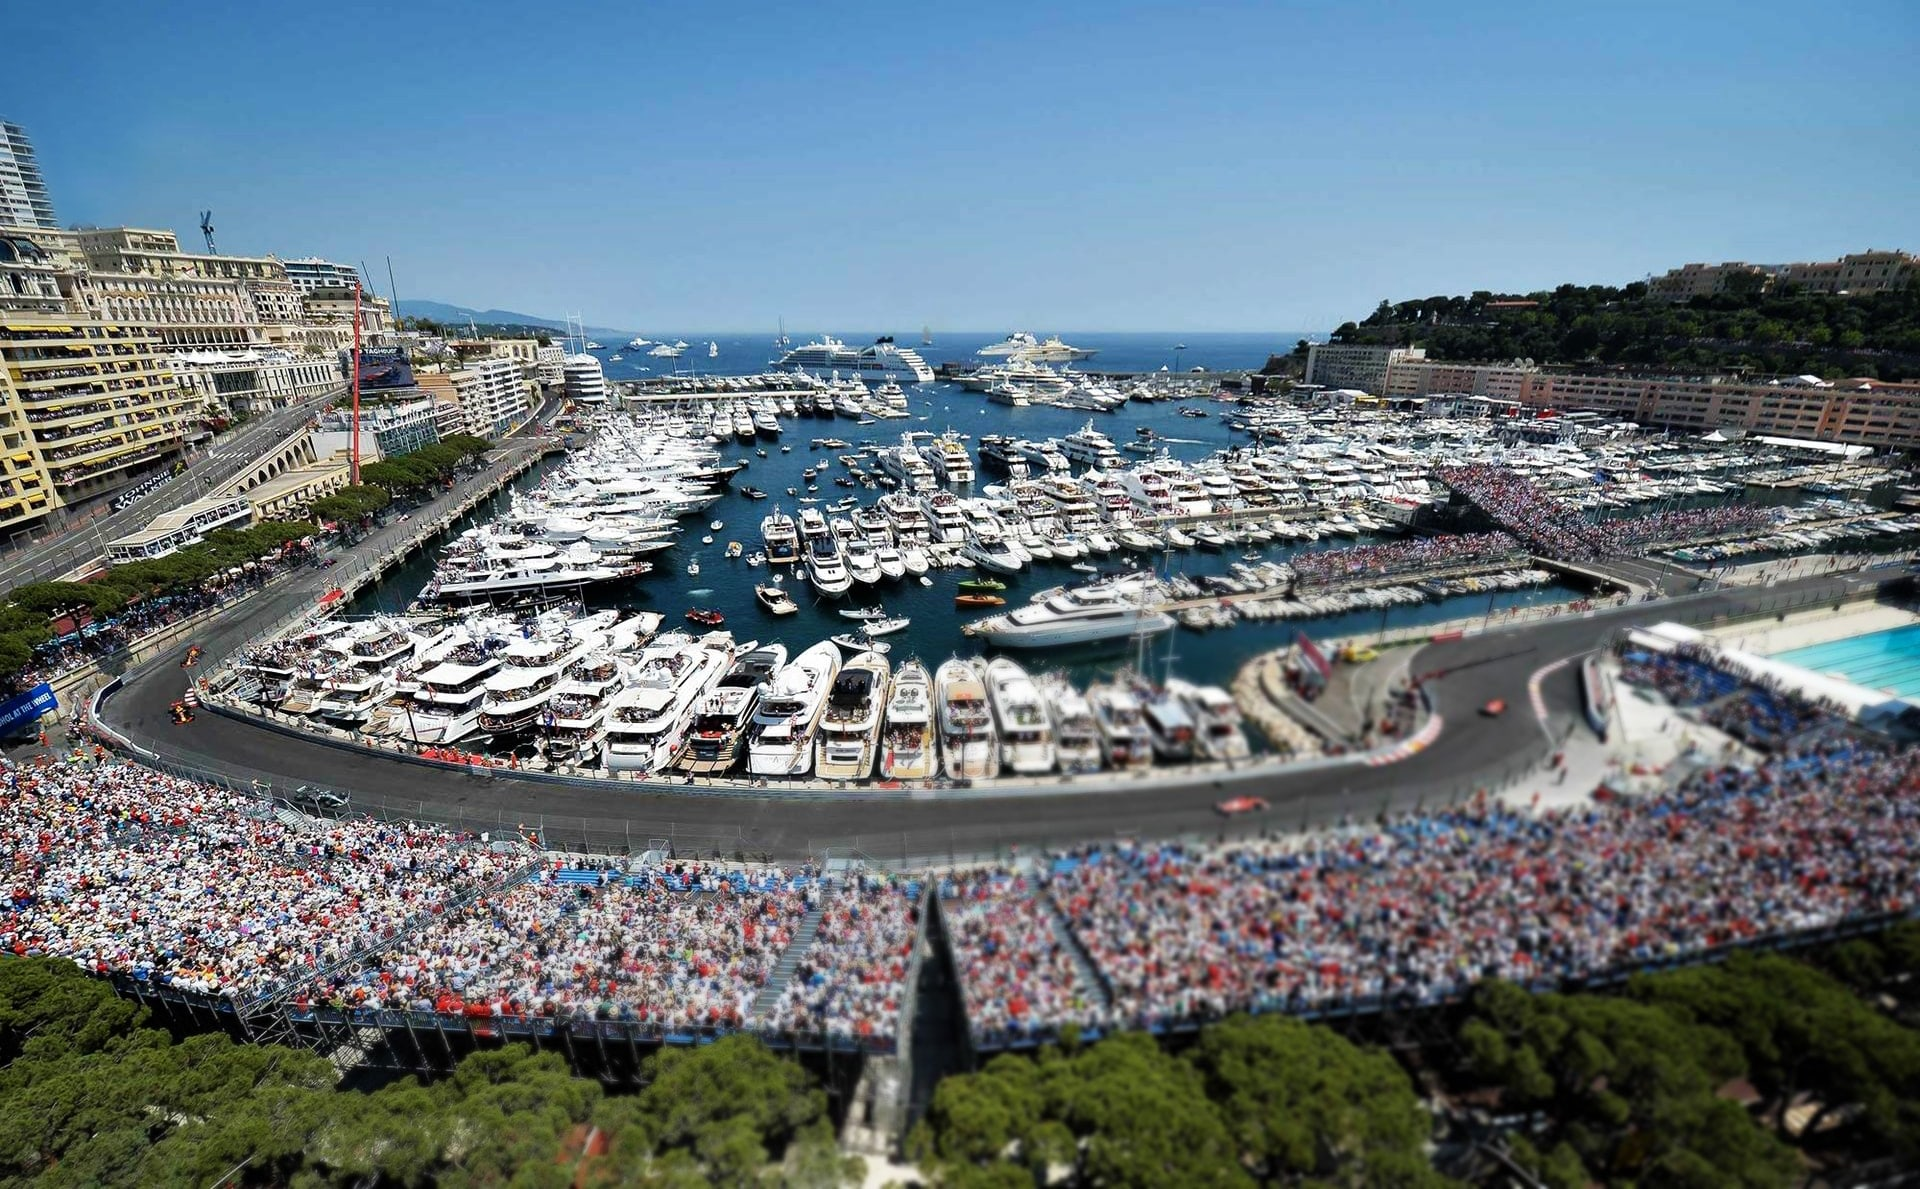 formula 1 2018 monaco, best terrace, vip tickets f1, rent ferrari california, ferrari 488 spider, lamborghini hucarac during formula1 monaco